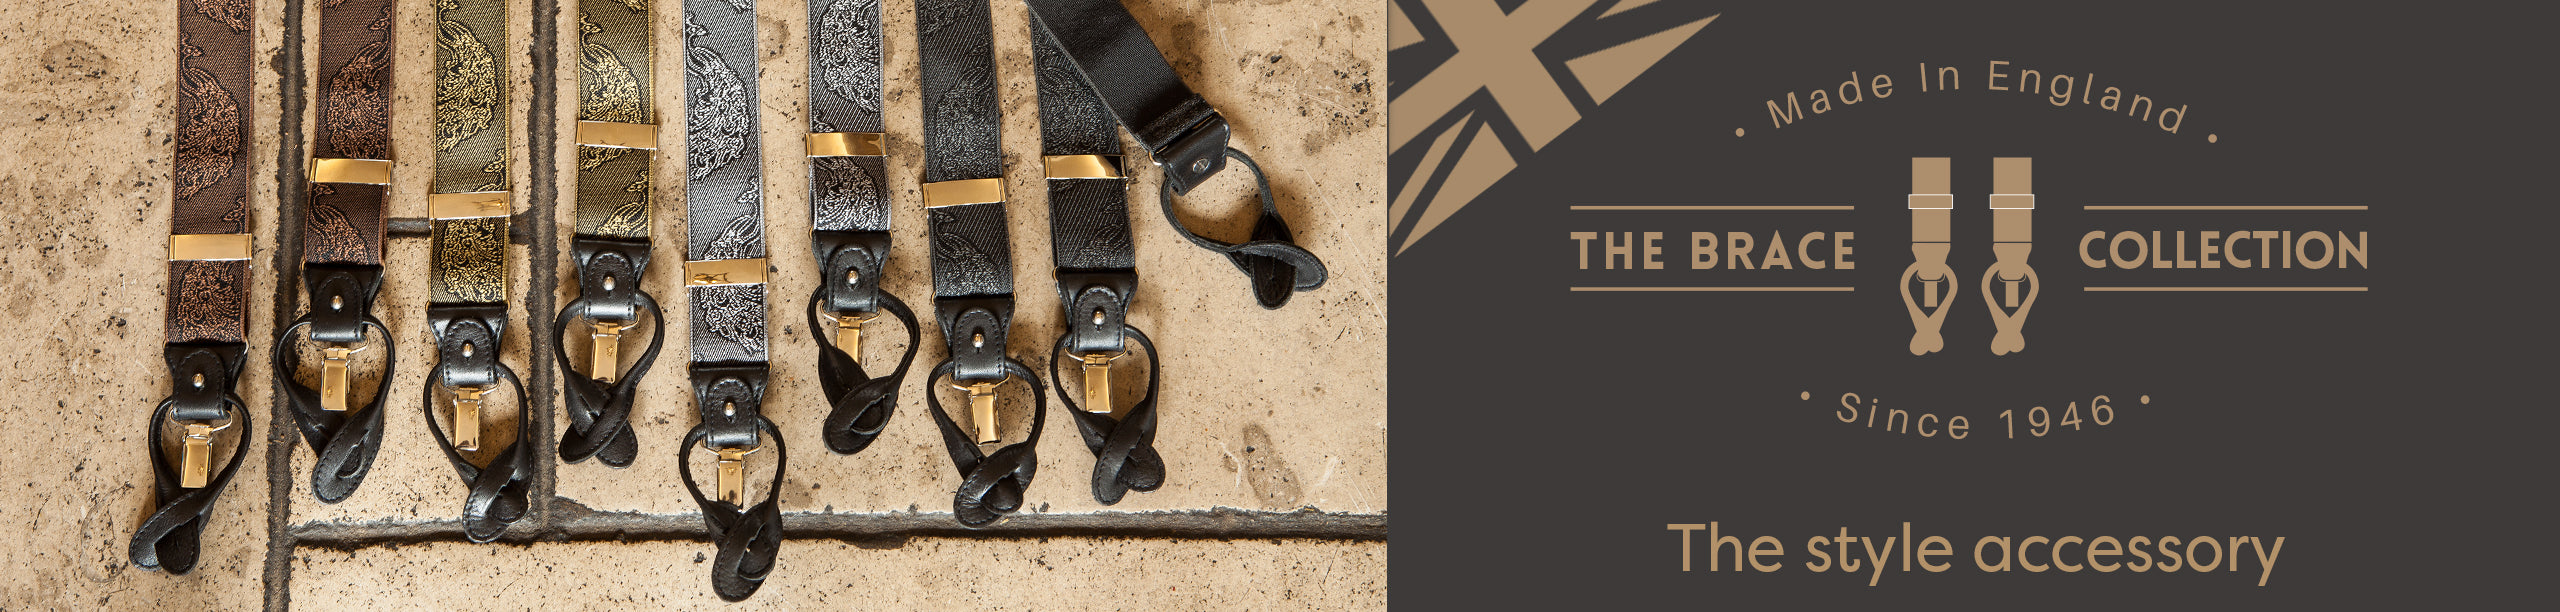 Men's premium braces handmade in England